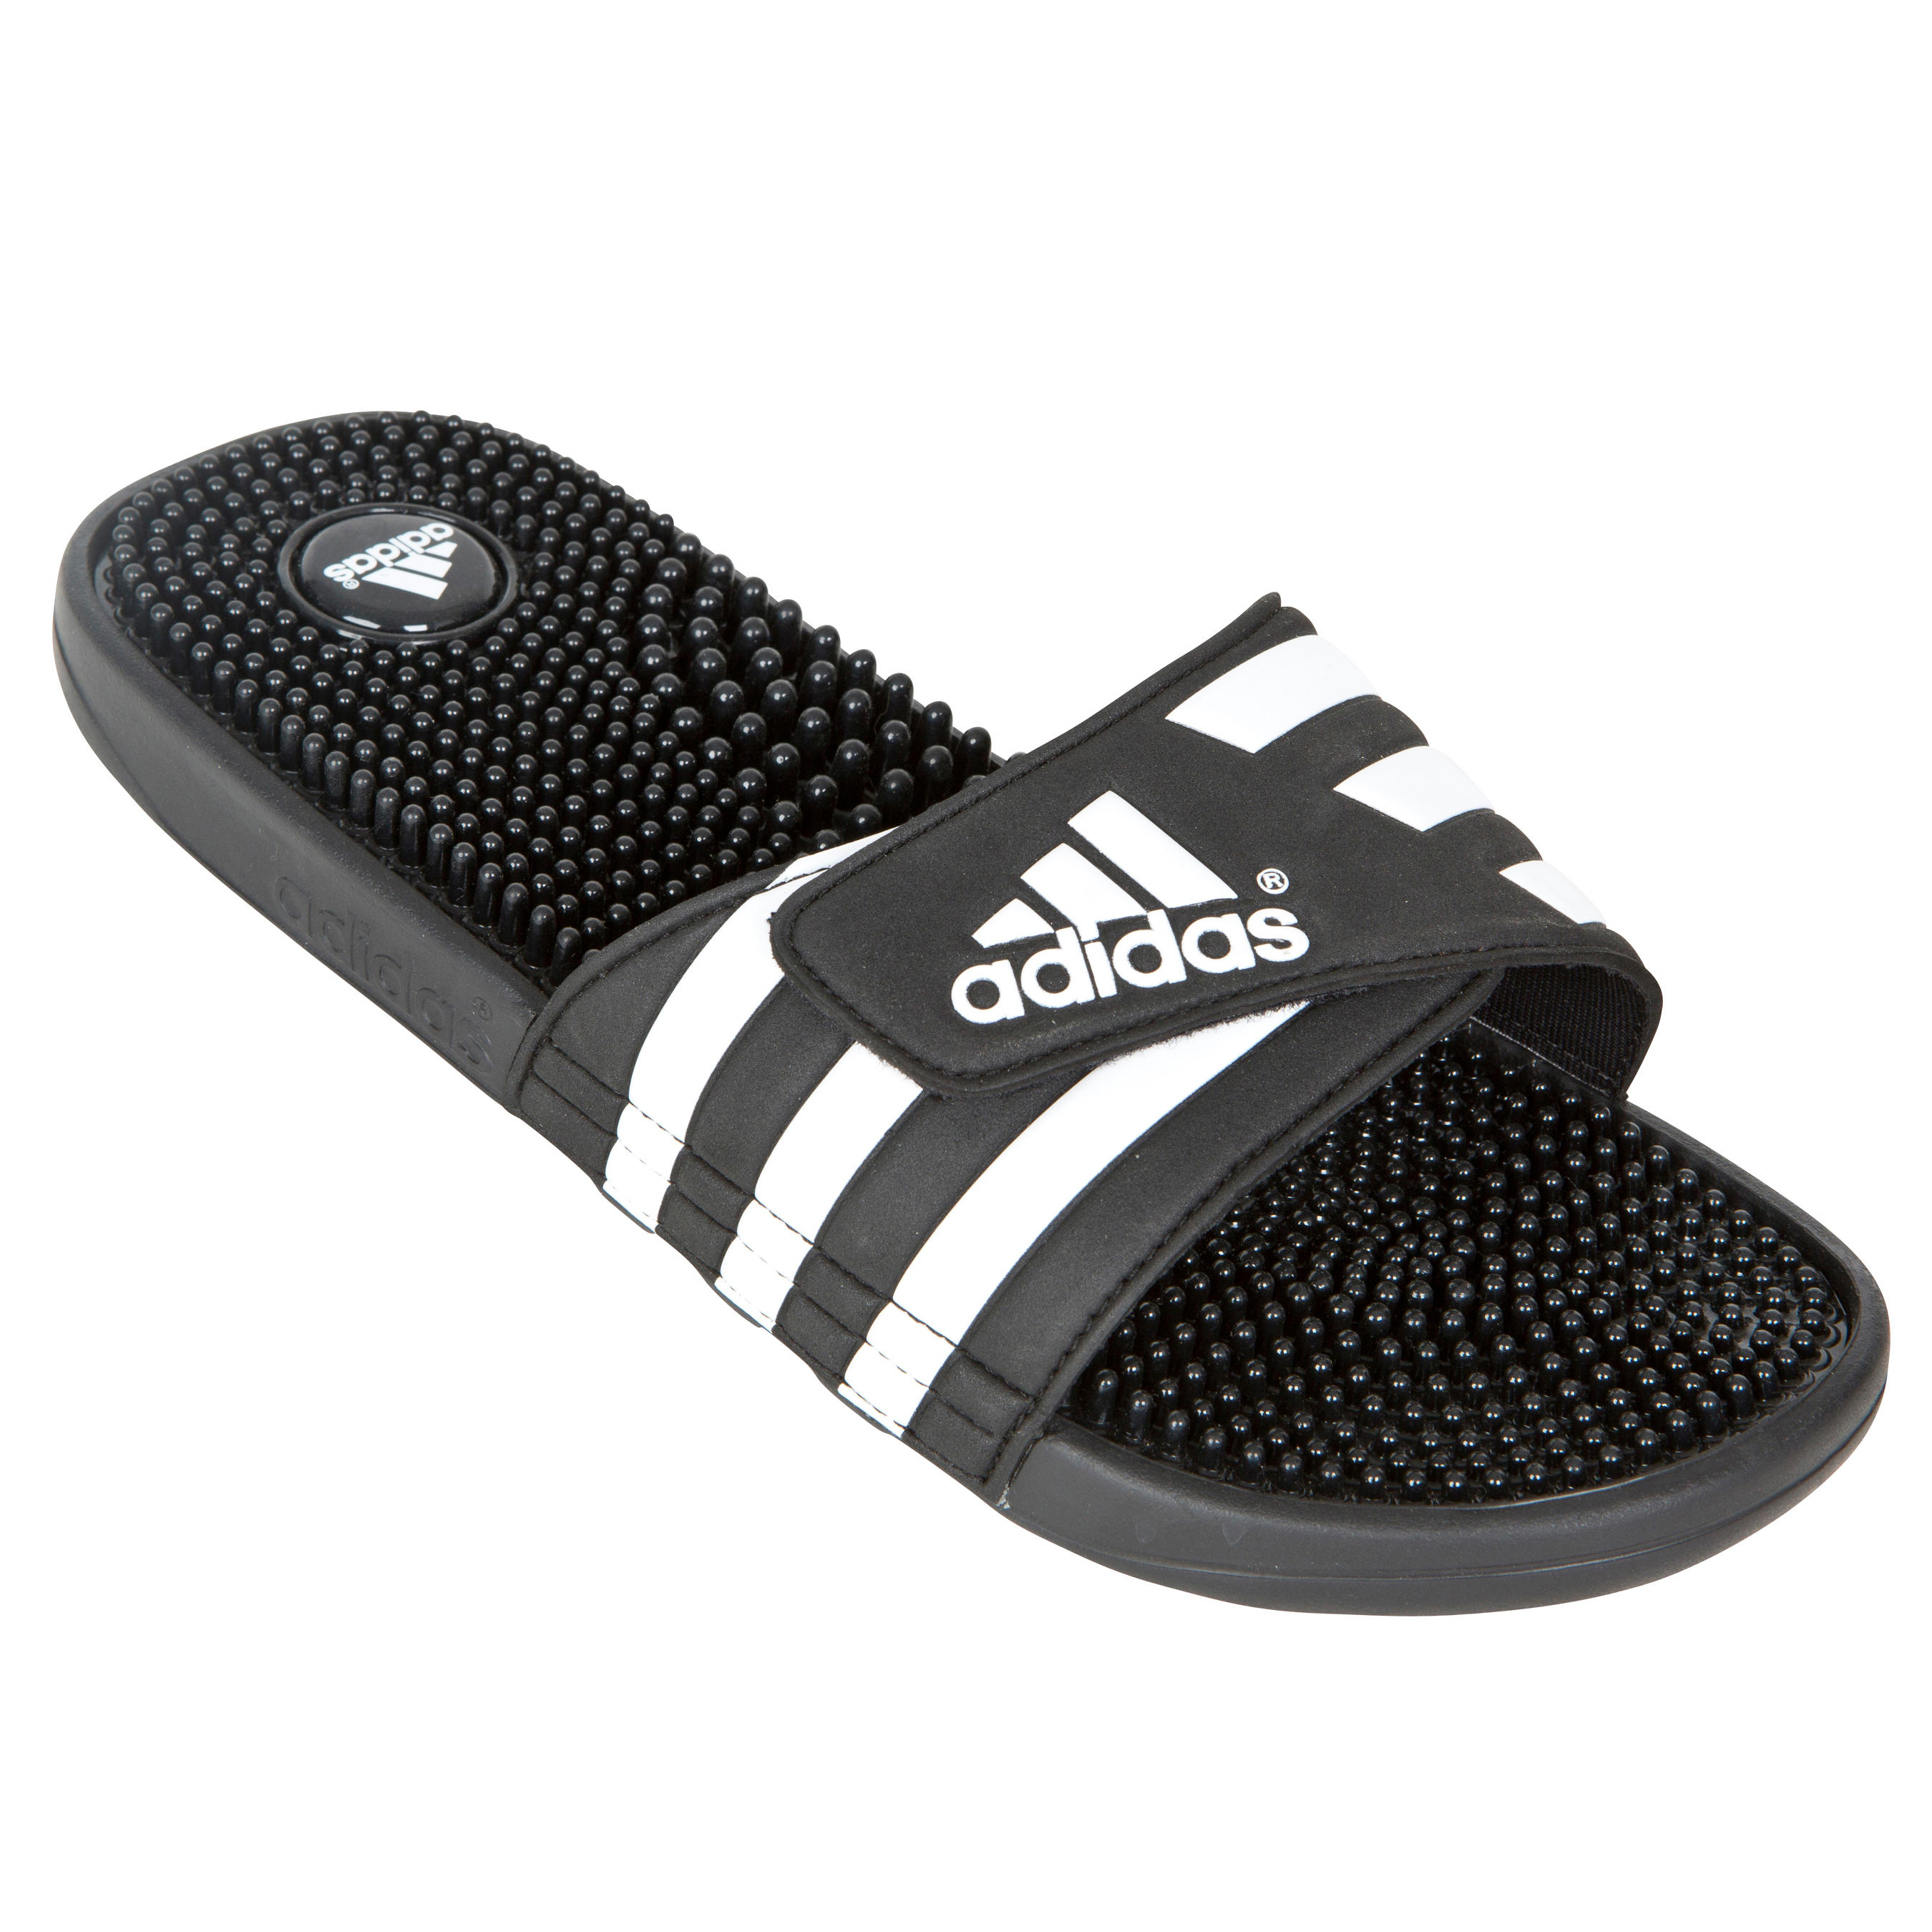 Slippers Adidas Adissage heren zwart wit